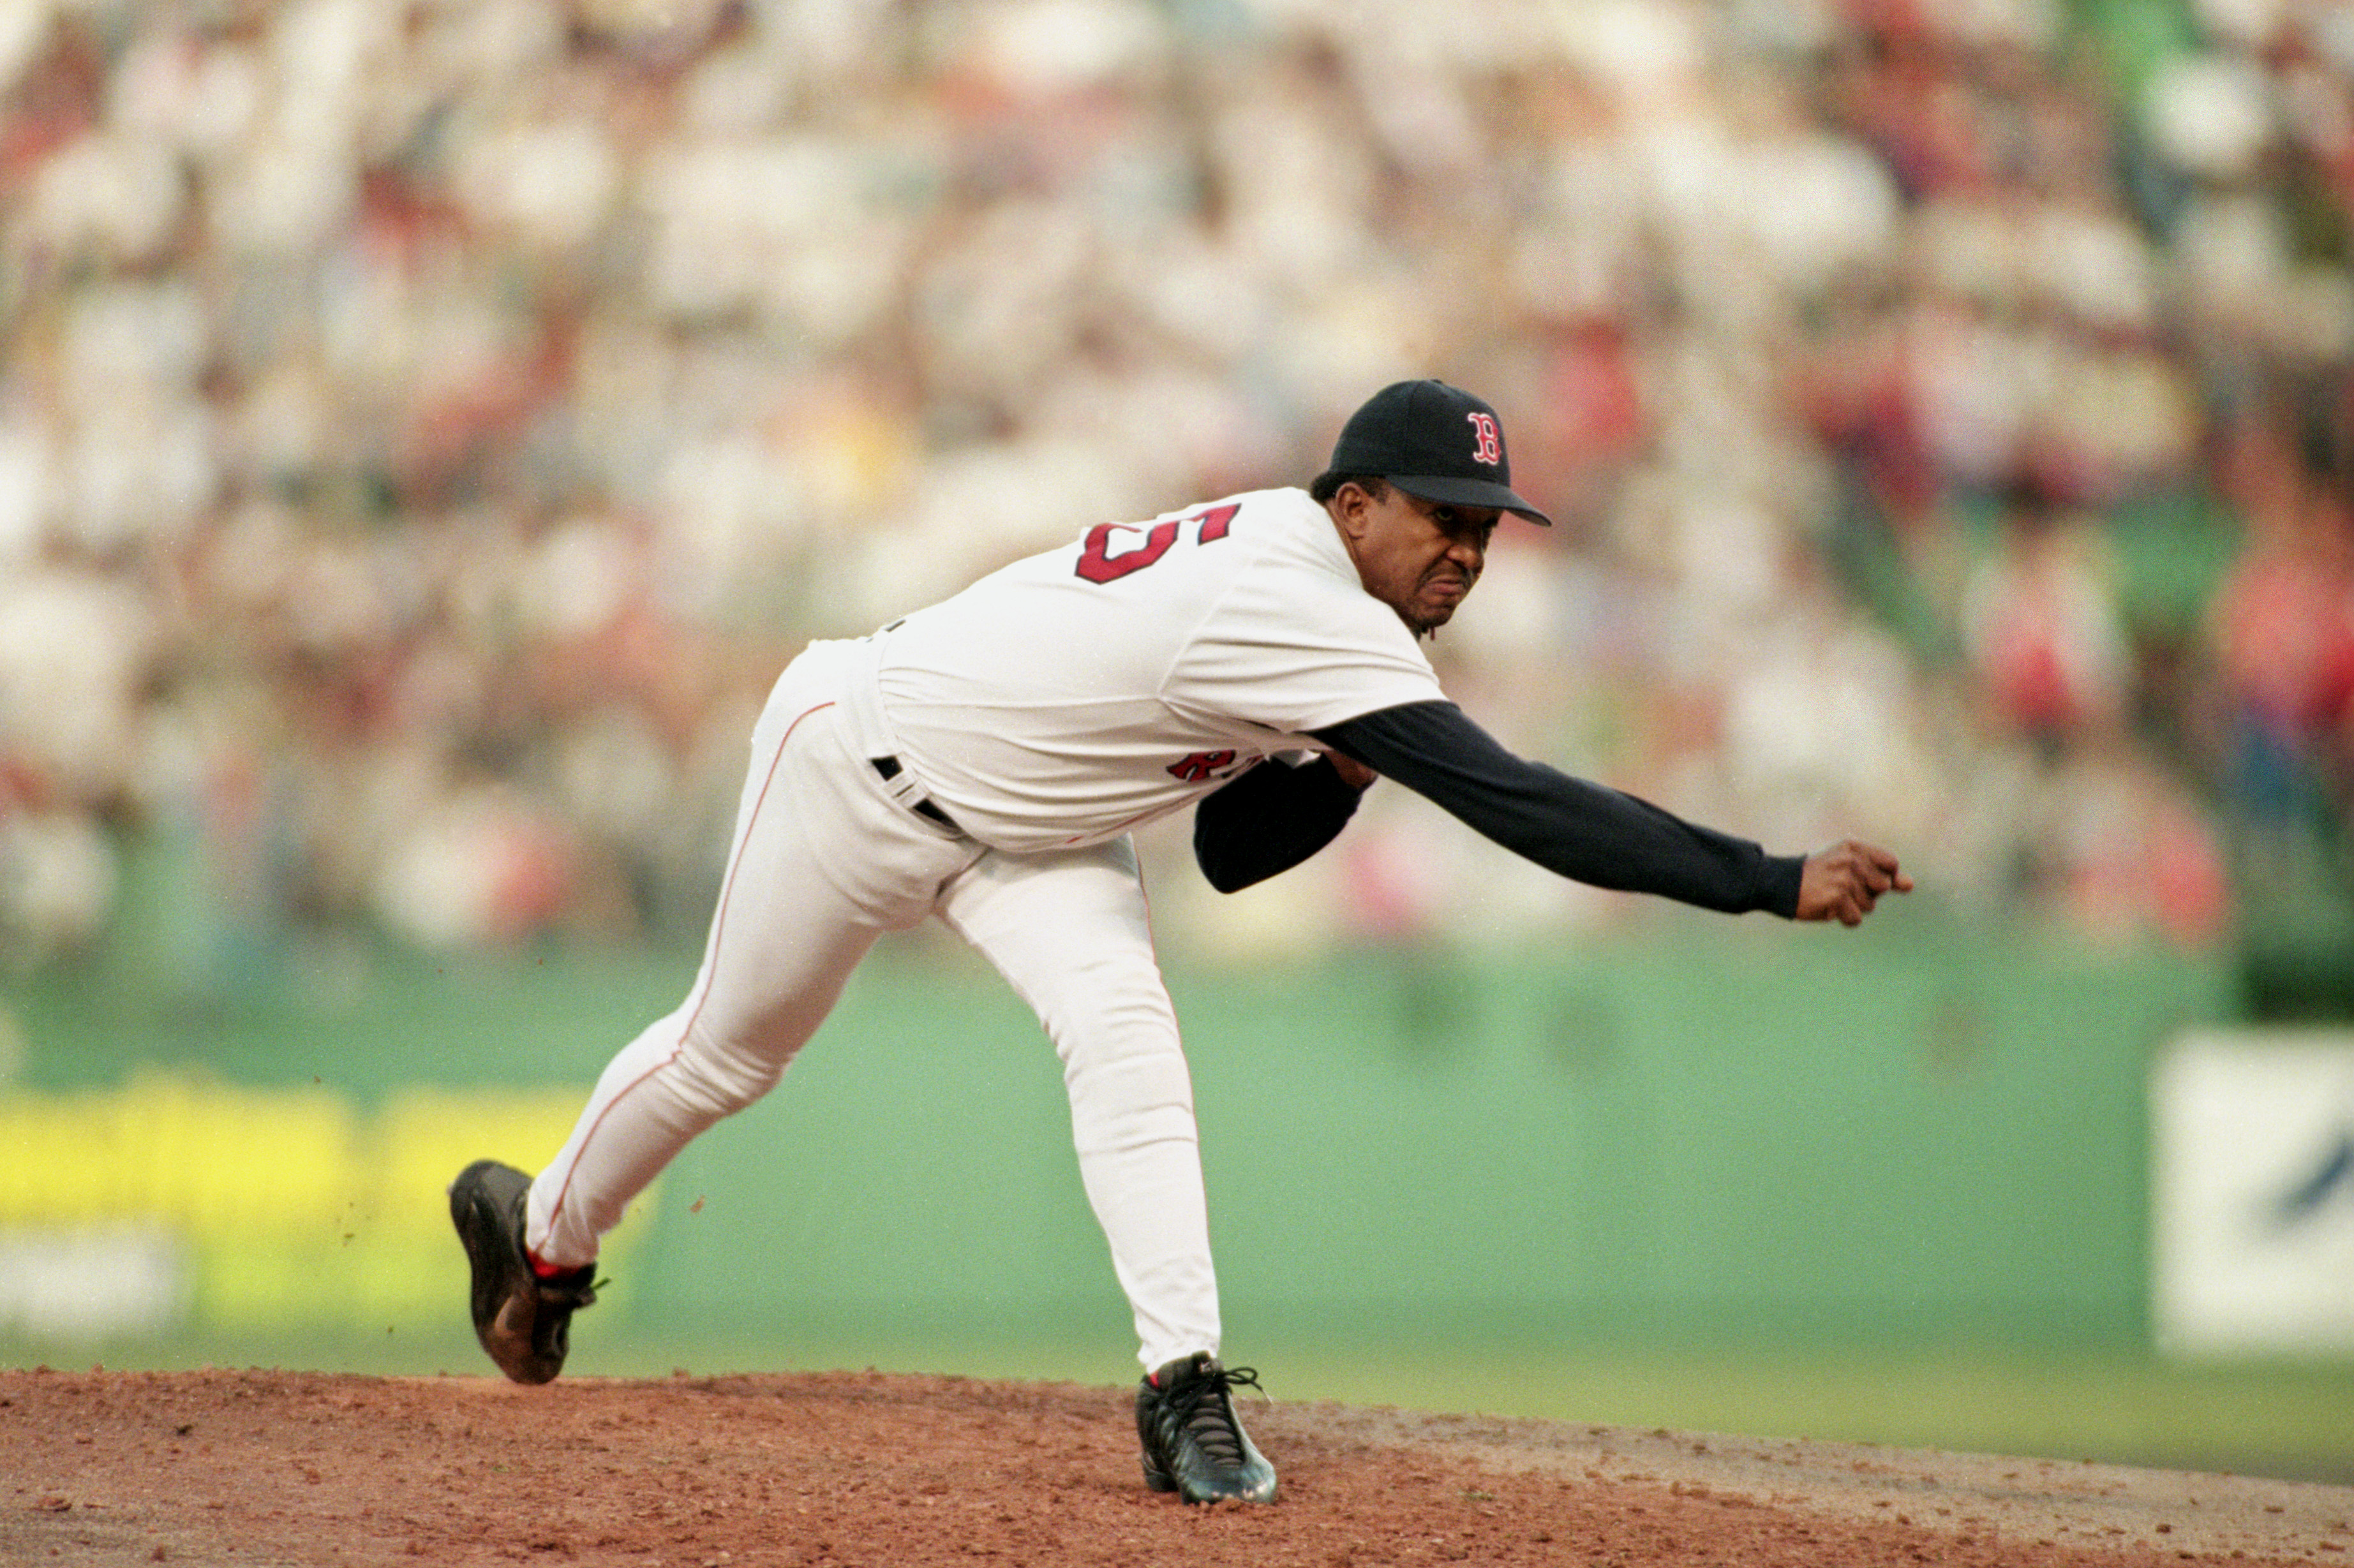 BOSTON - OCTOBER 16:  Pitcher Pedro Martinez #45 of the Boston Red Sox delivers a pitch against the New York Yankees during the game at Fenway Park in Boston, Massachusetts on October 16, 1999.  The Red Sox won 13-1.  (Photo by Jed Jacobsohn/Getty Images)